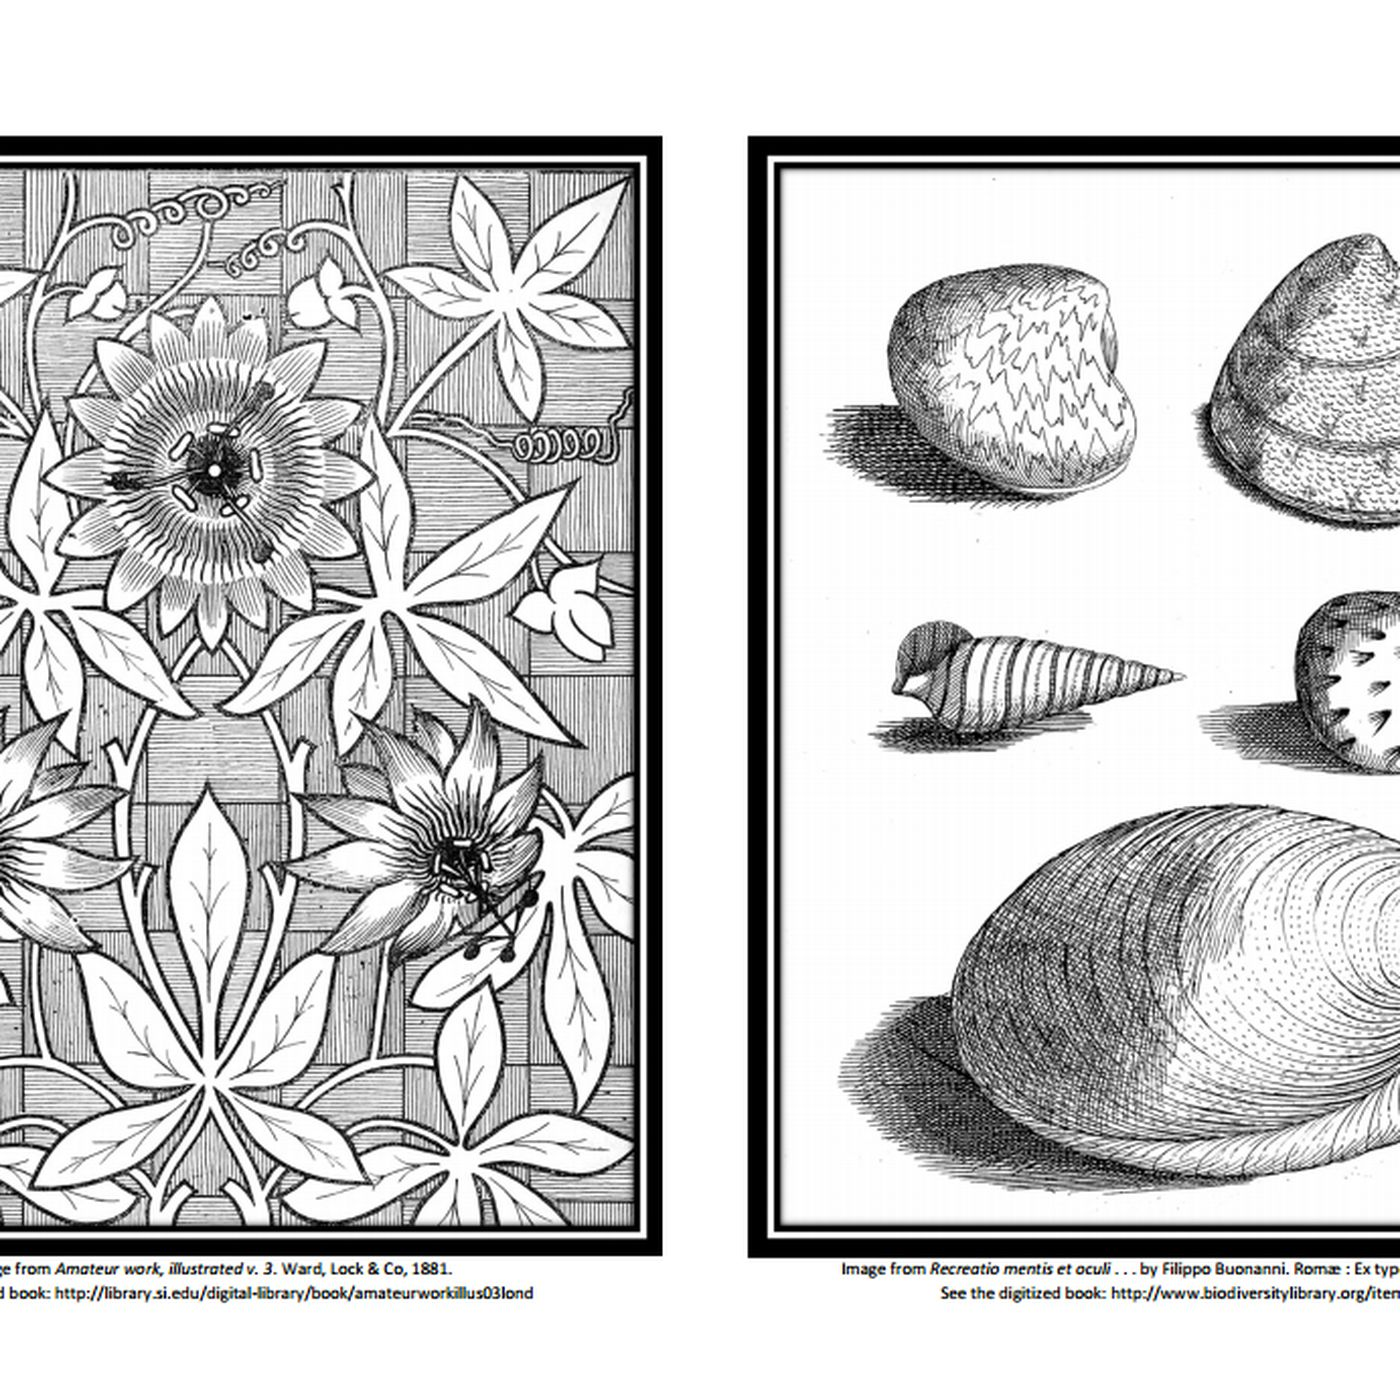 - Get Free Coloring Books From Major Libraries And Museums - Curbed